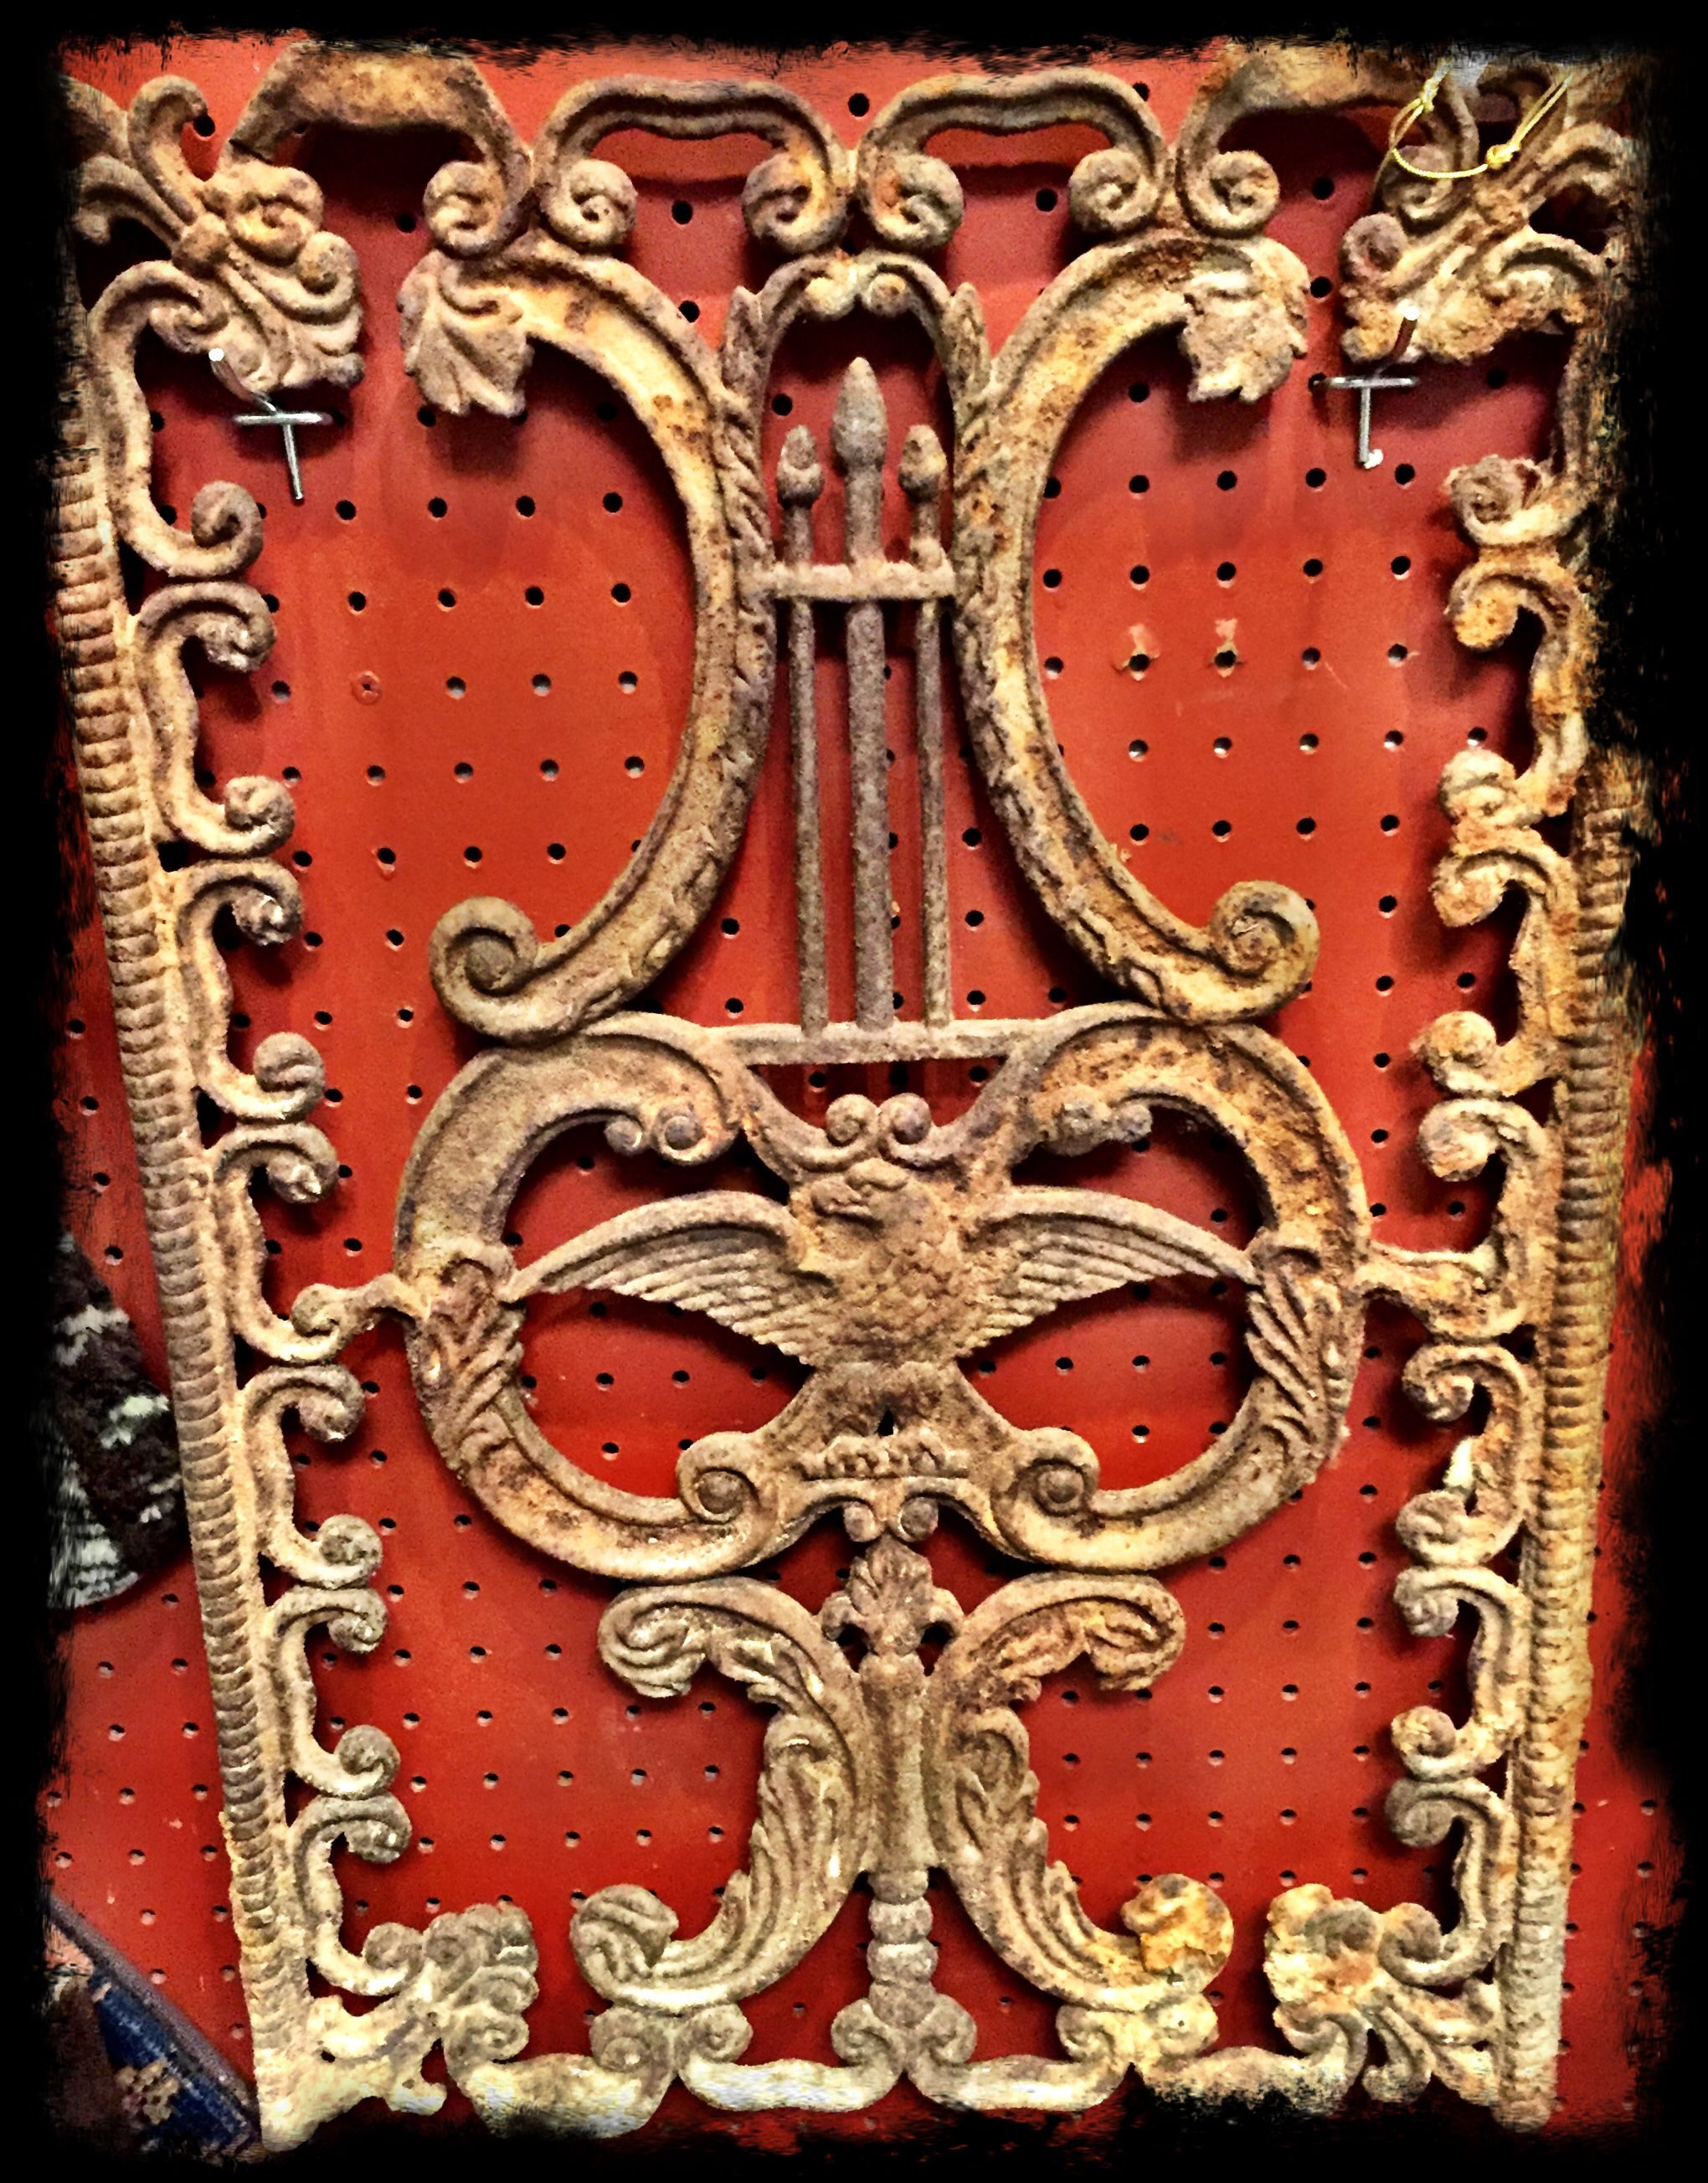 Great antique (19th century) wrought iron panel-ornate with eagle center.  $250.00.  Gaslamp Antiques, booth 230